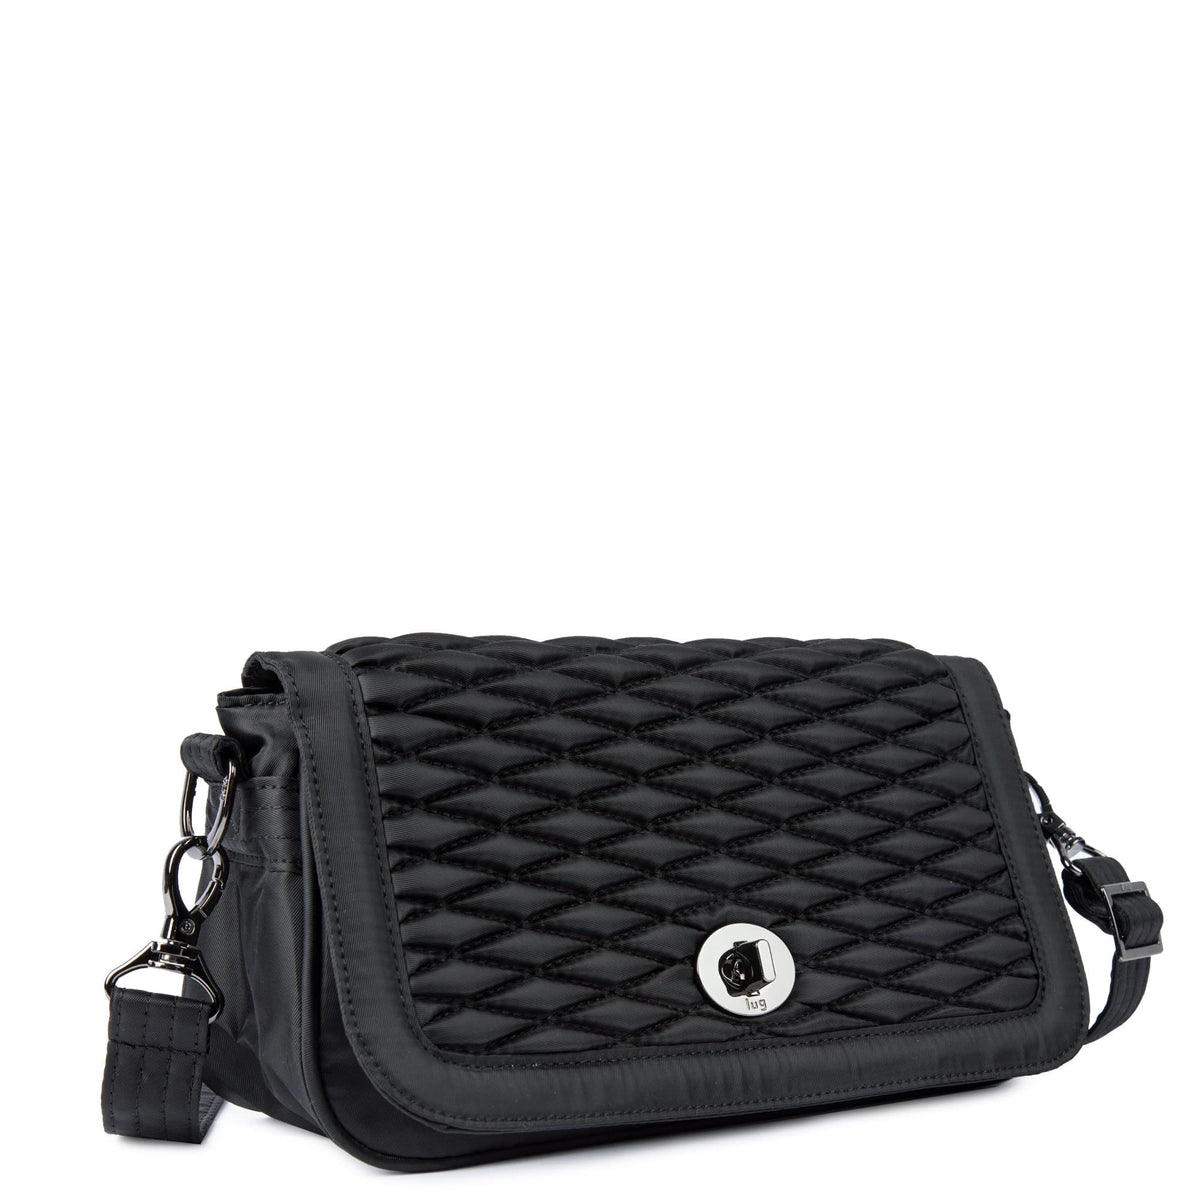 Allegro Convertible Crossbody Bag